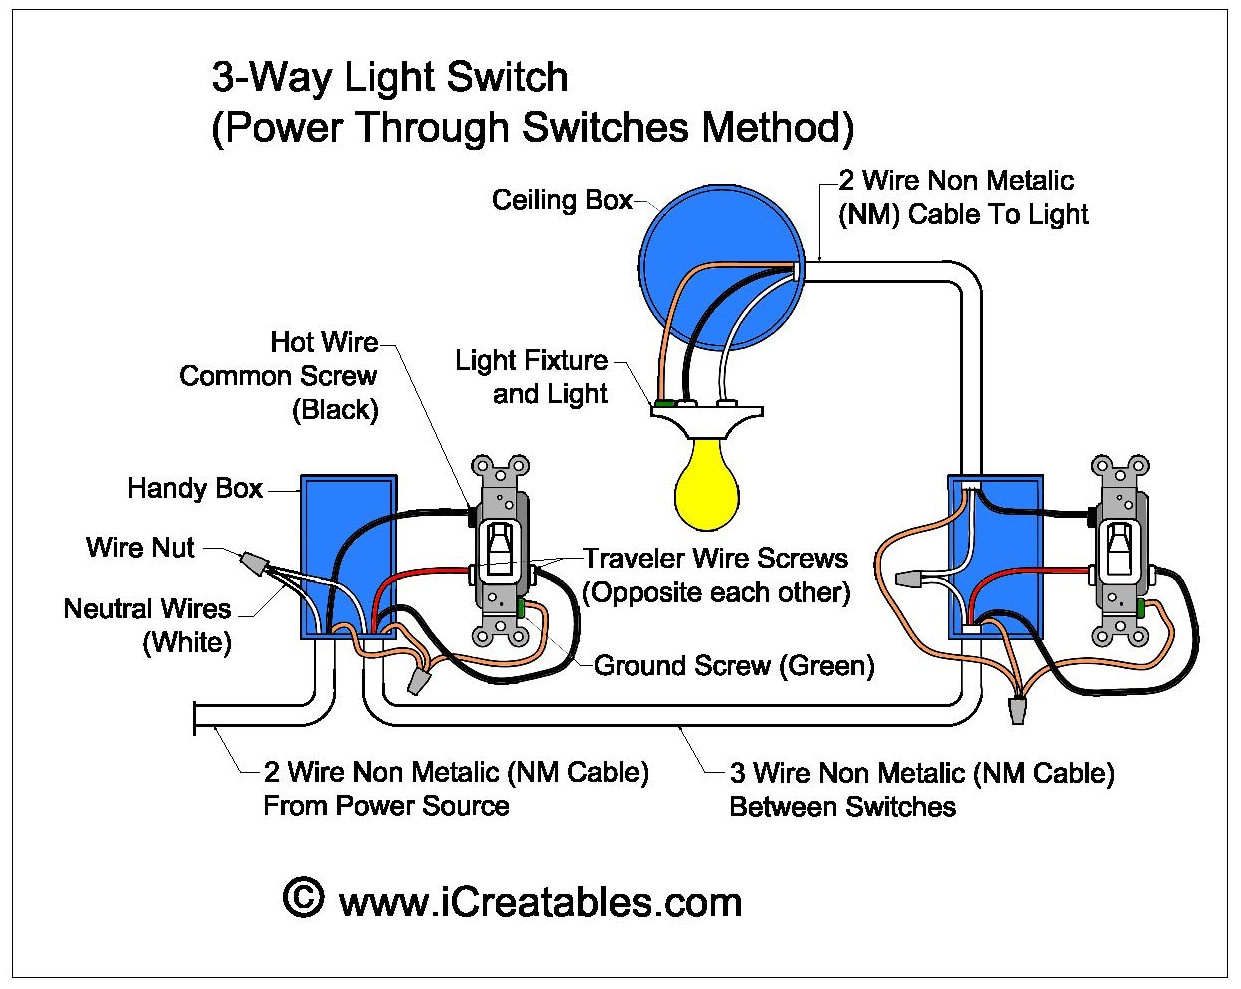 switch wiring diagram wire way light three dimmer power electrical shed lights diagrams wires dummies circuit switches pole simple single